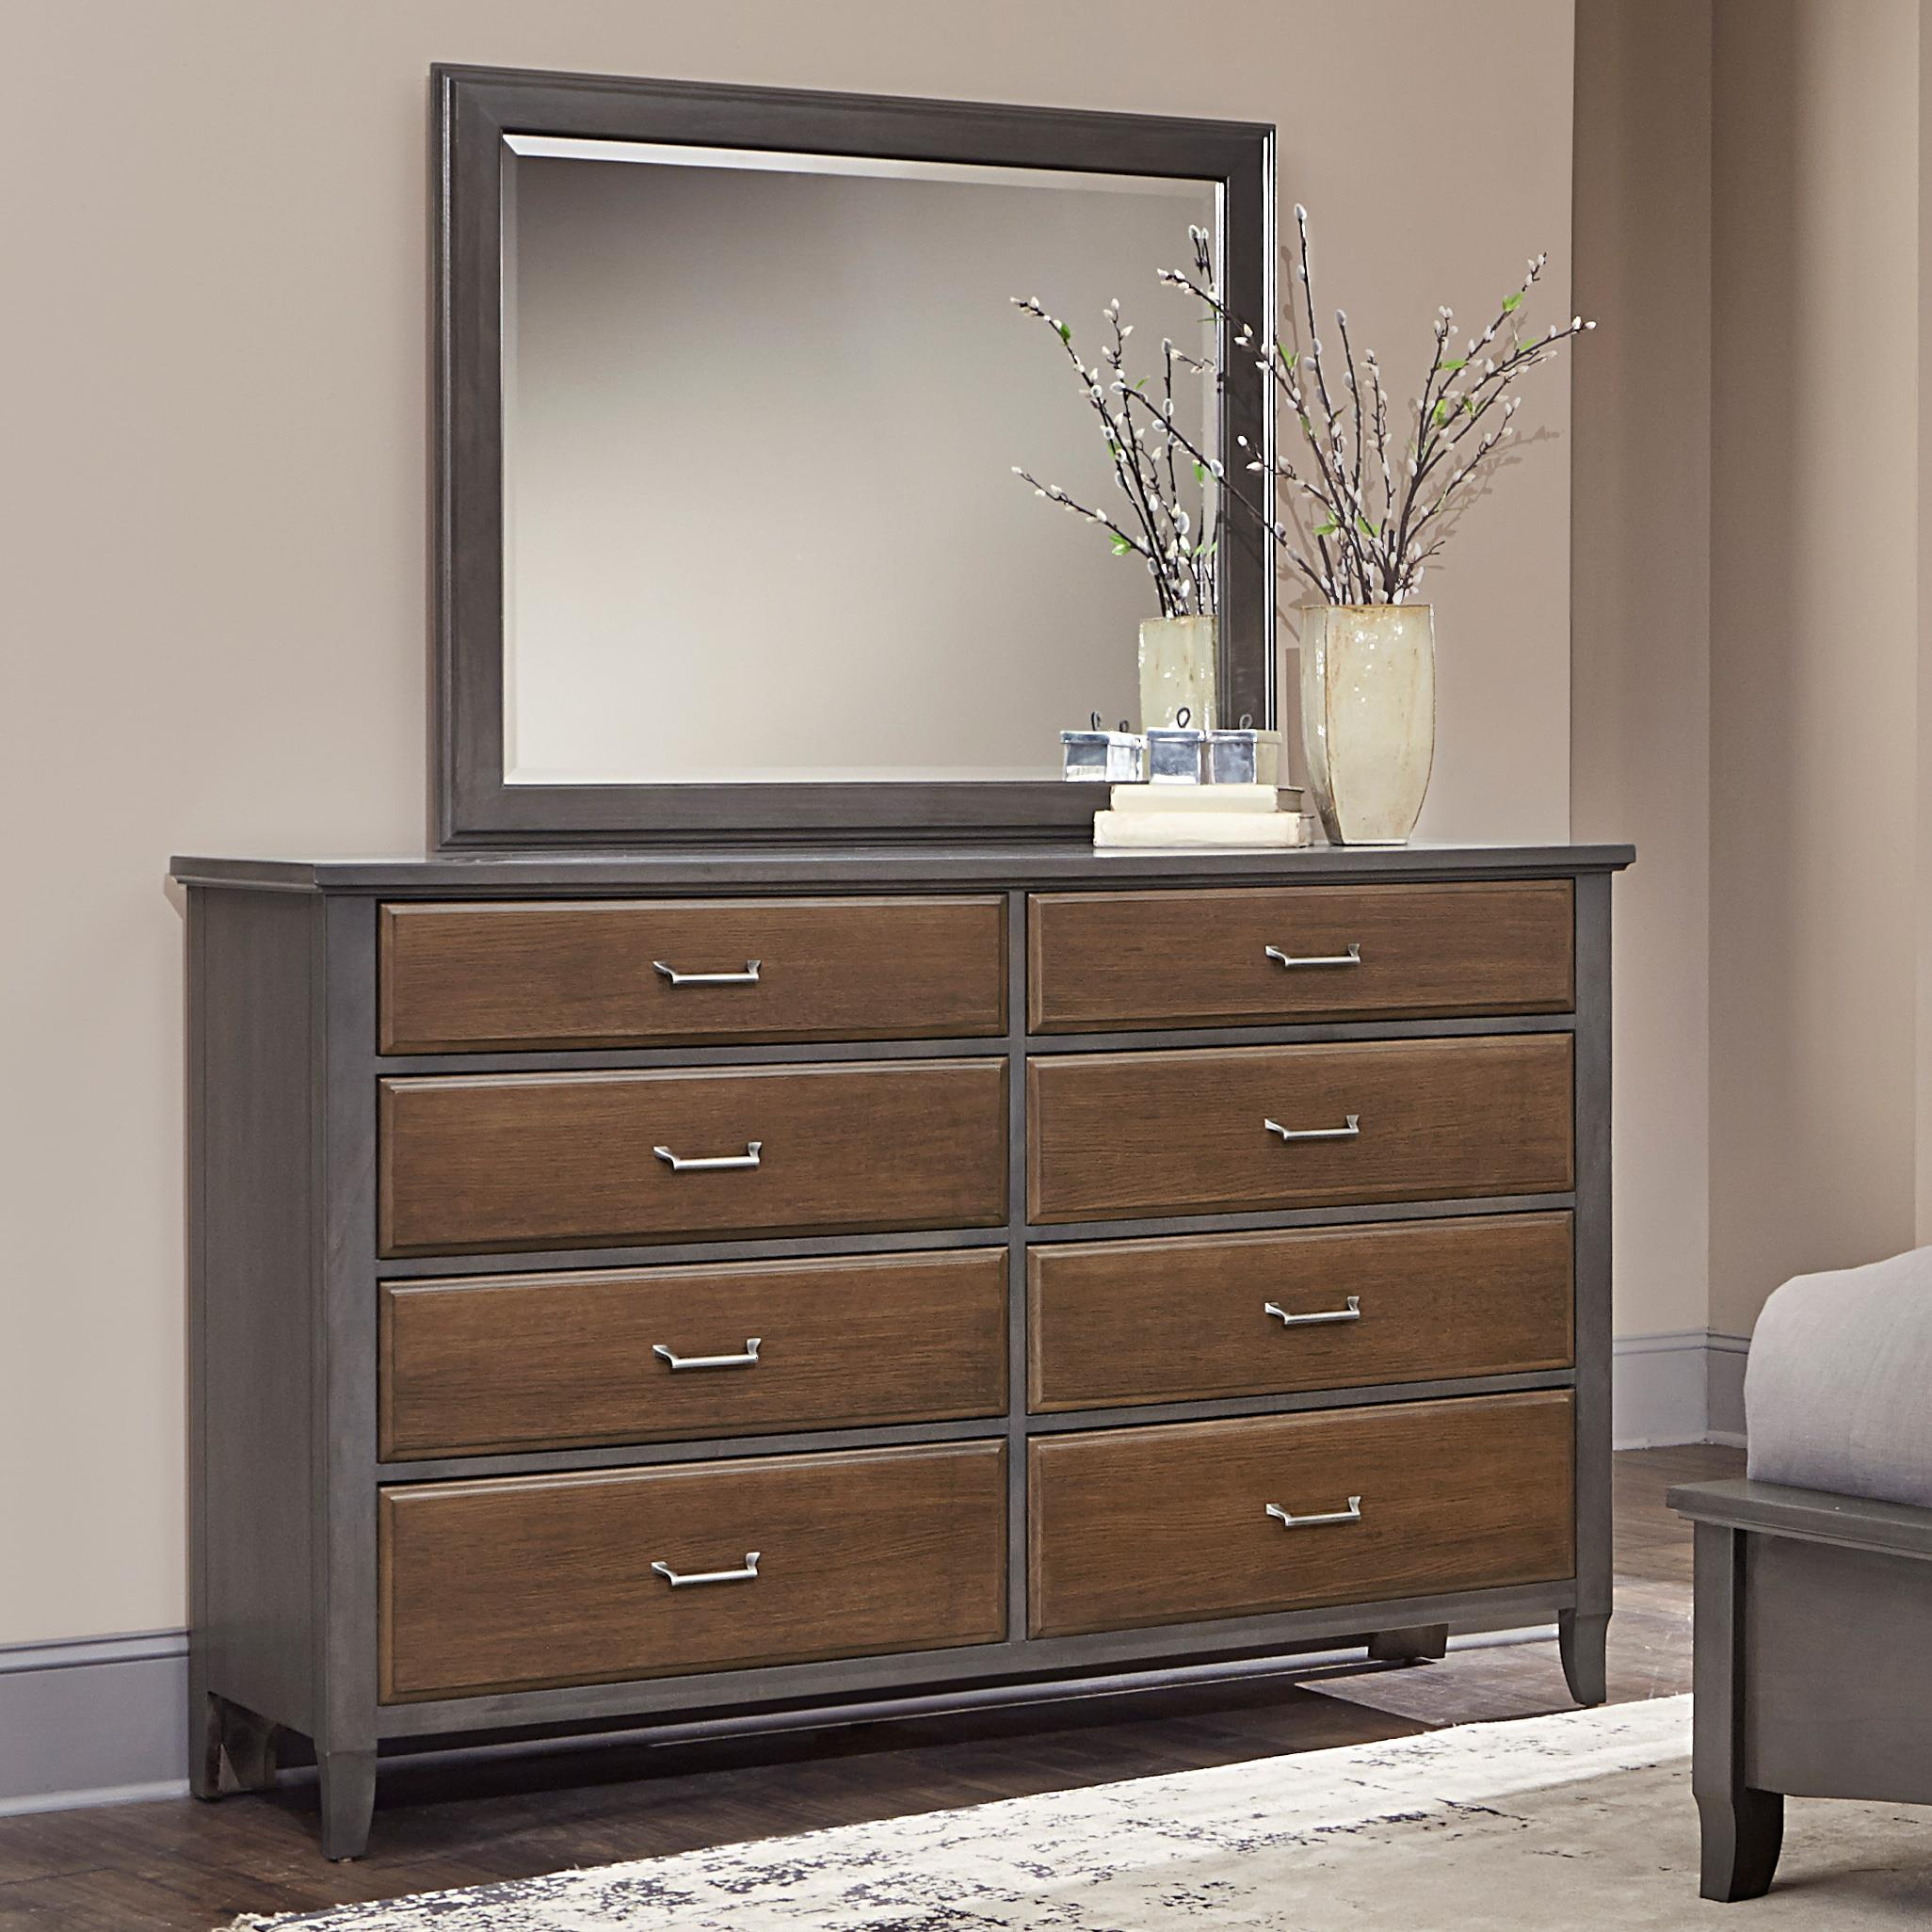 Vaughan Bassett Commentary Two-Tone Dresser & Large Landscape Mirror - Item Number: 394-003+445